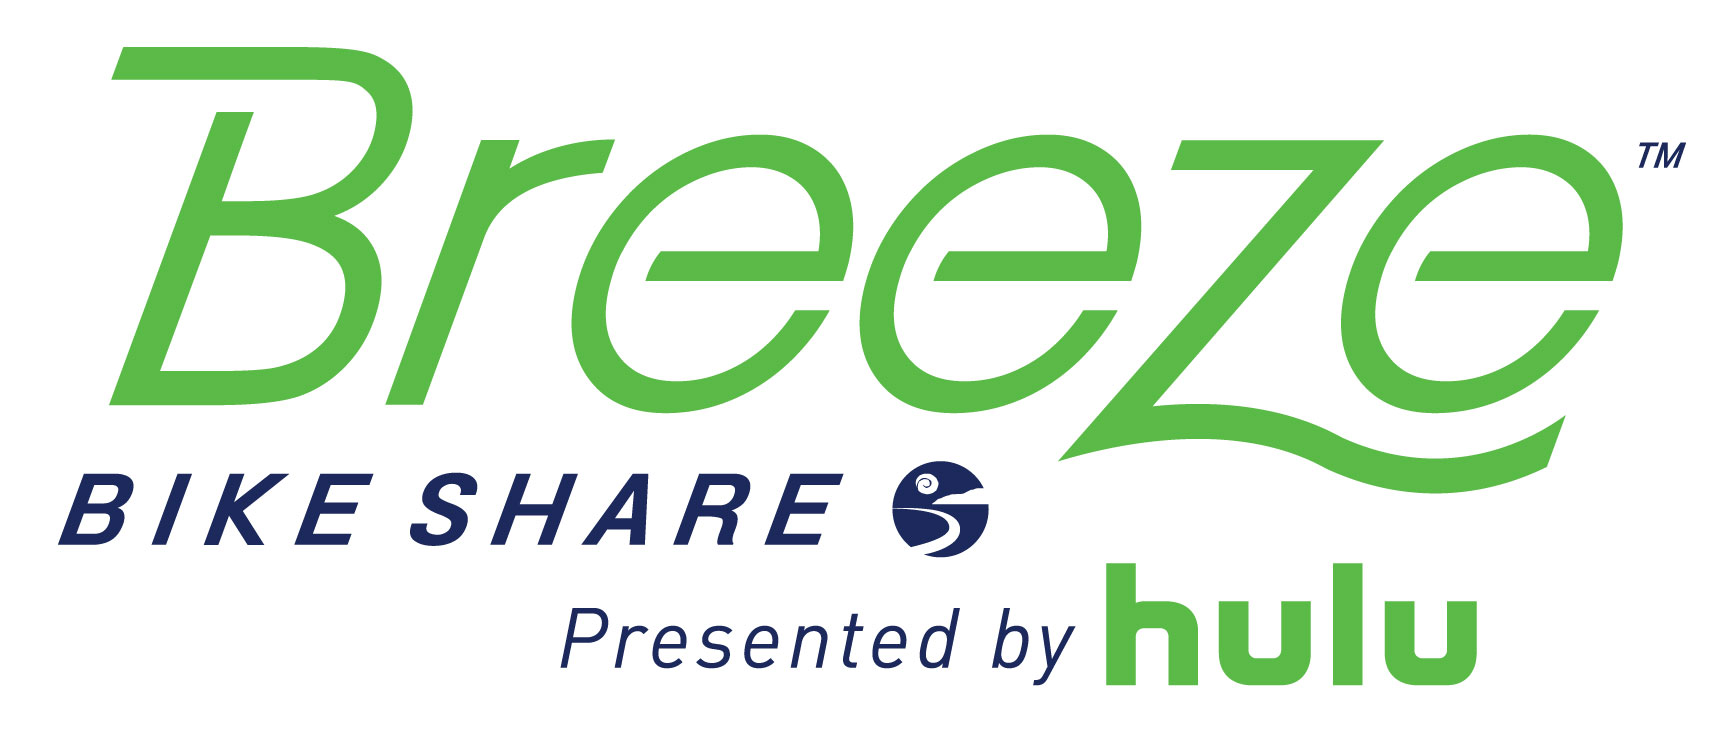 1-Breeze-Hulu-Logo-Header